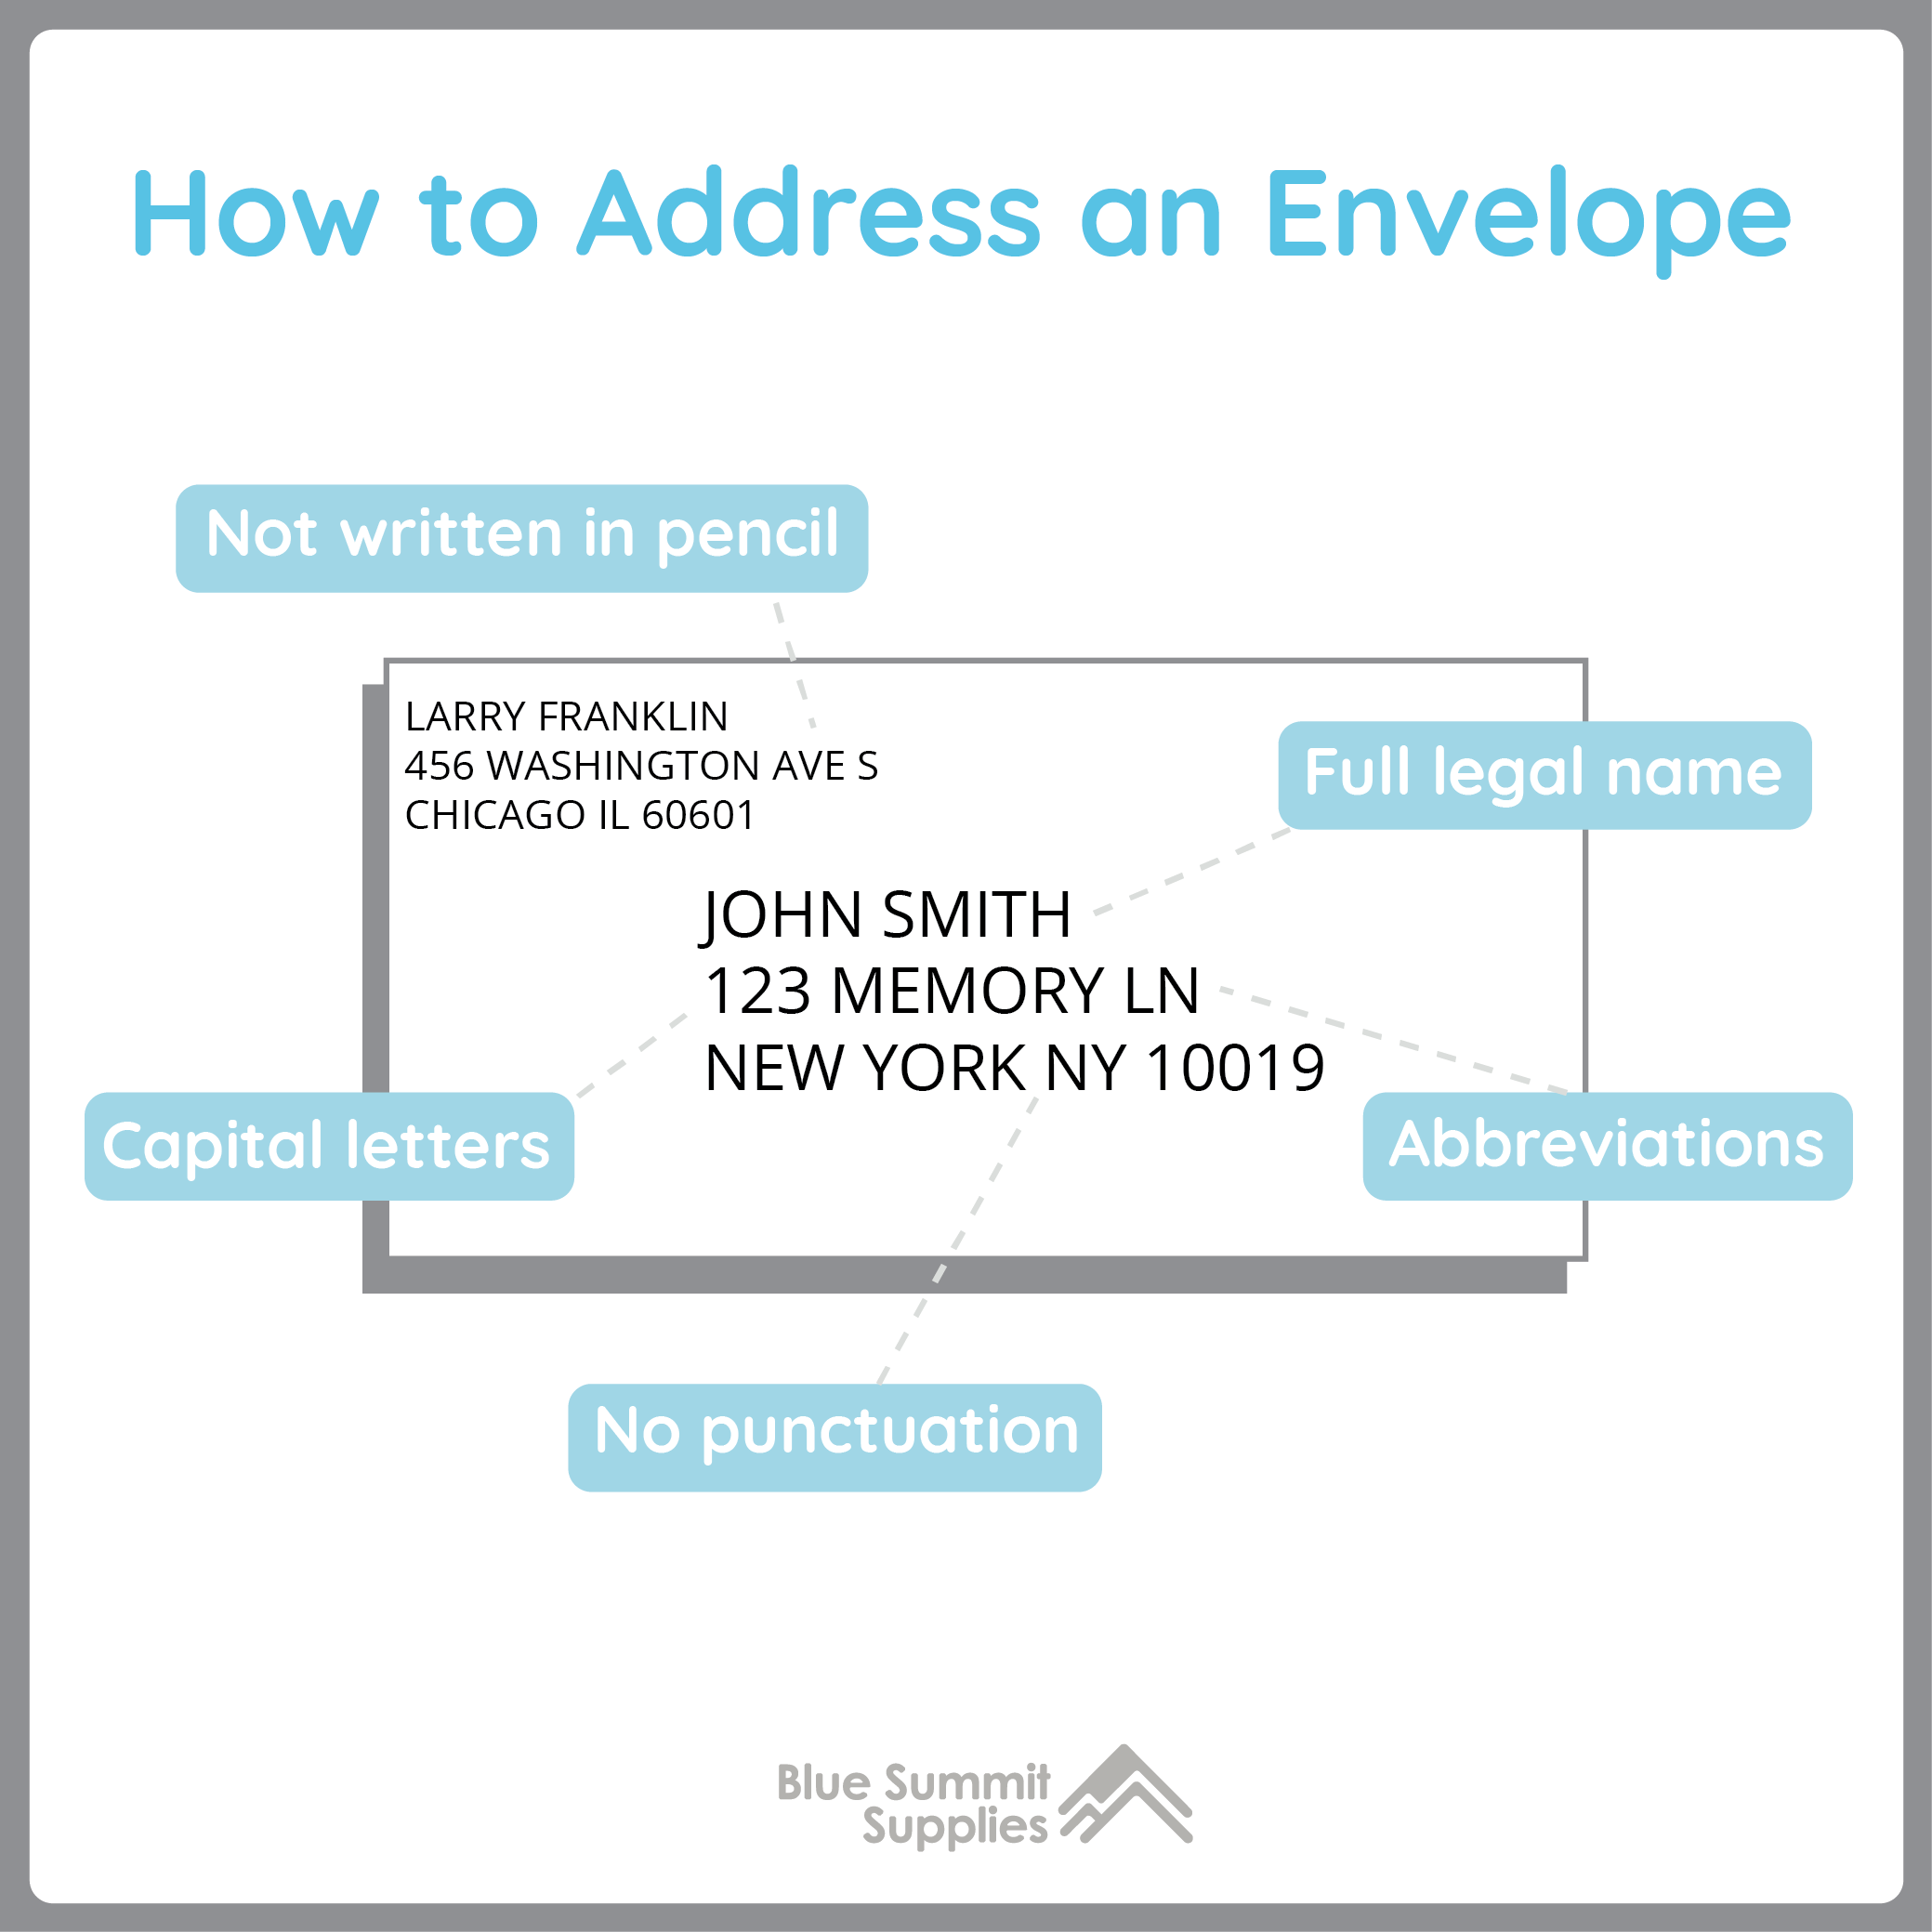 How To Address An Envelope What To Write On An Envelope Blue Summit Supplies